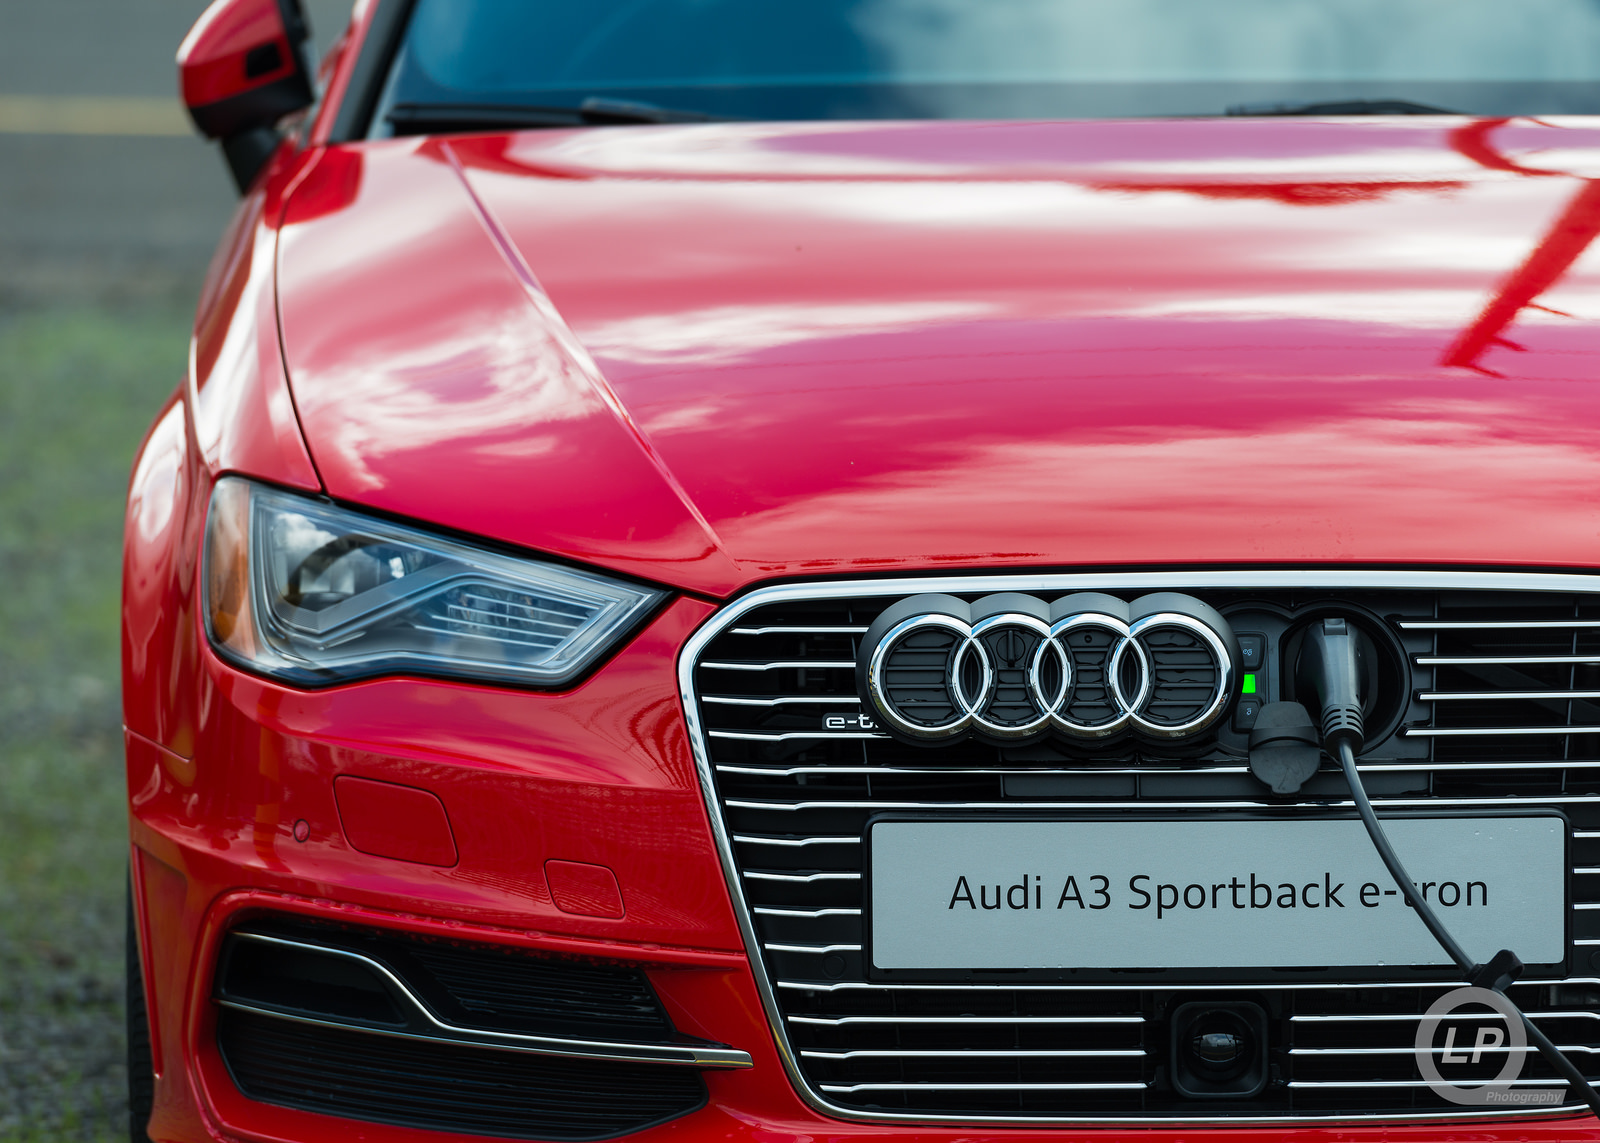 Audi A3 Sportback e-tron plugged in and charging